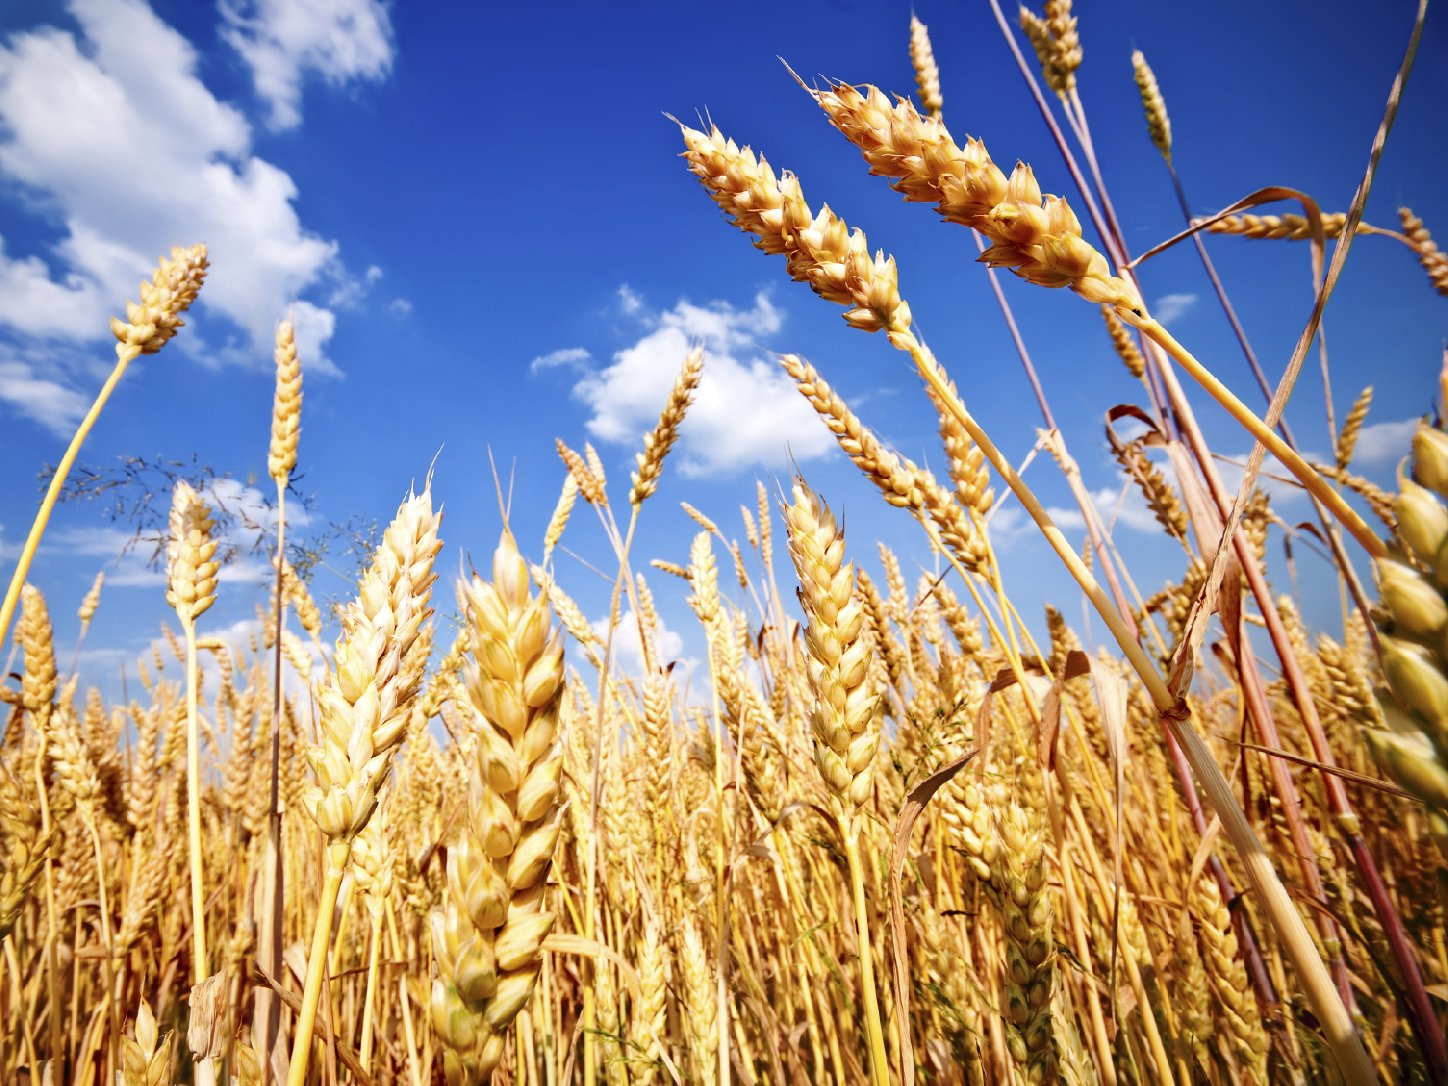 Wheat fields like this one could yield wheat with less zinc and iron in the future if they are exposed to higher levels of CO2, according to the journal Nature. Photo: Zaharov Evgeniy/iStockphoto.com